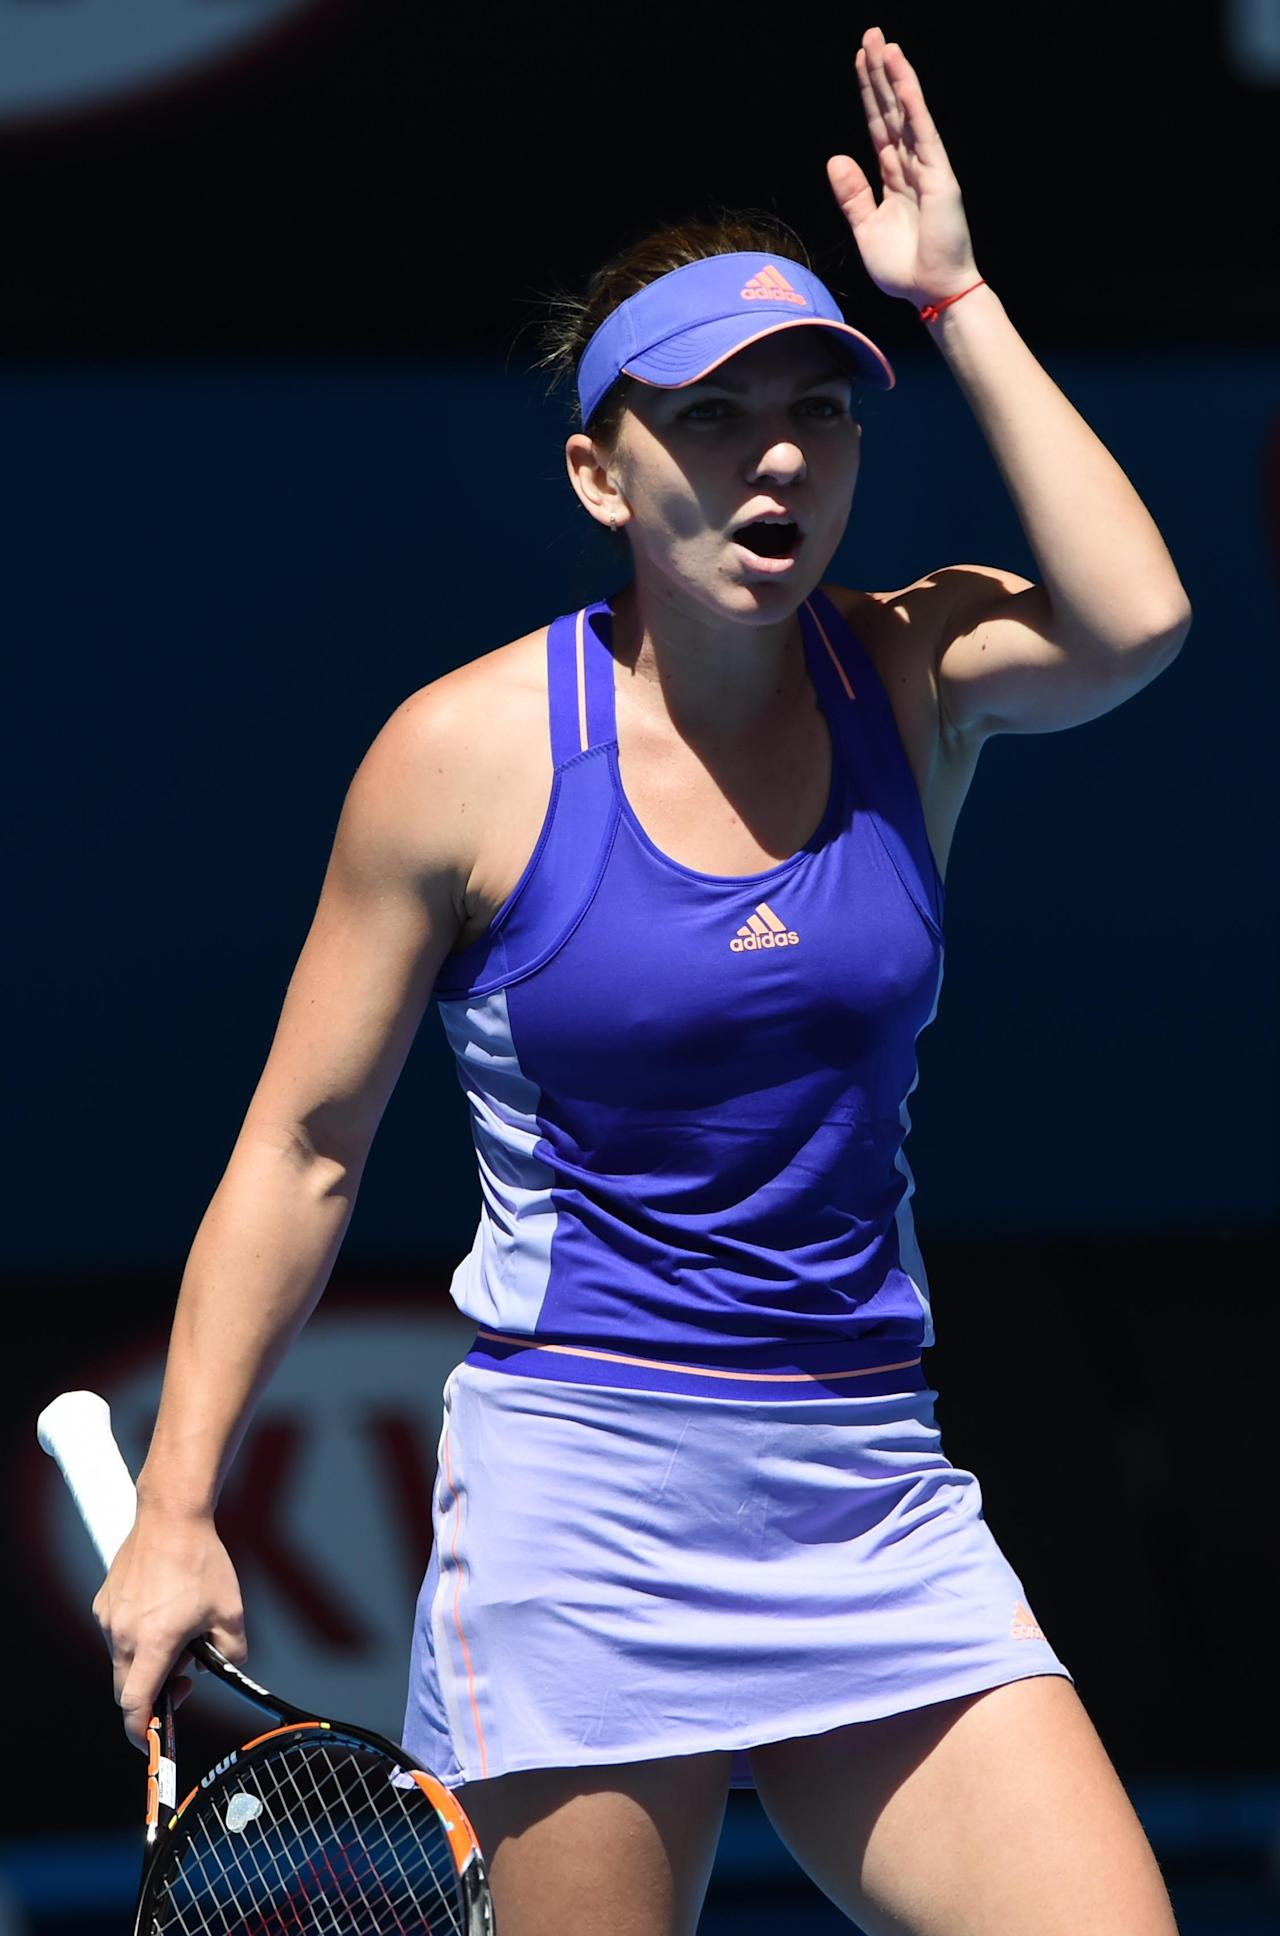 Halep advances to 2nd round at the Australian Open